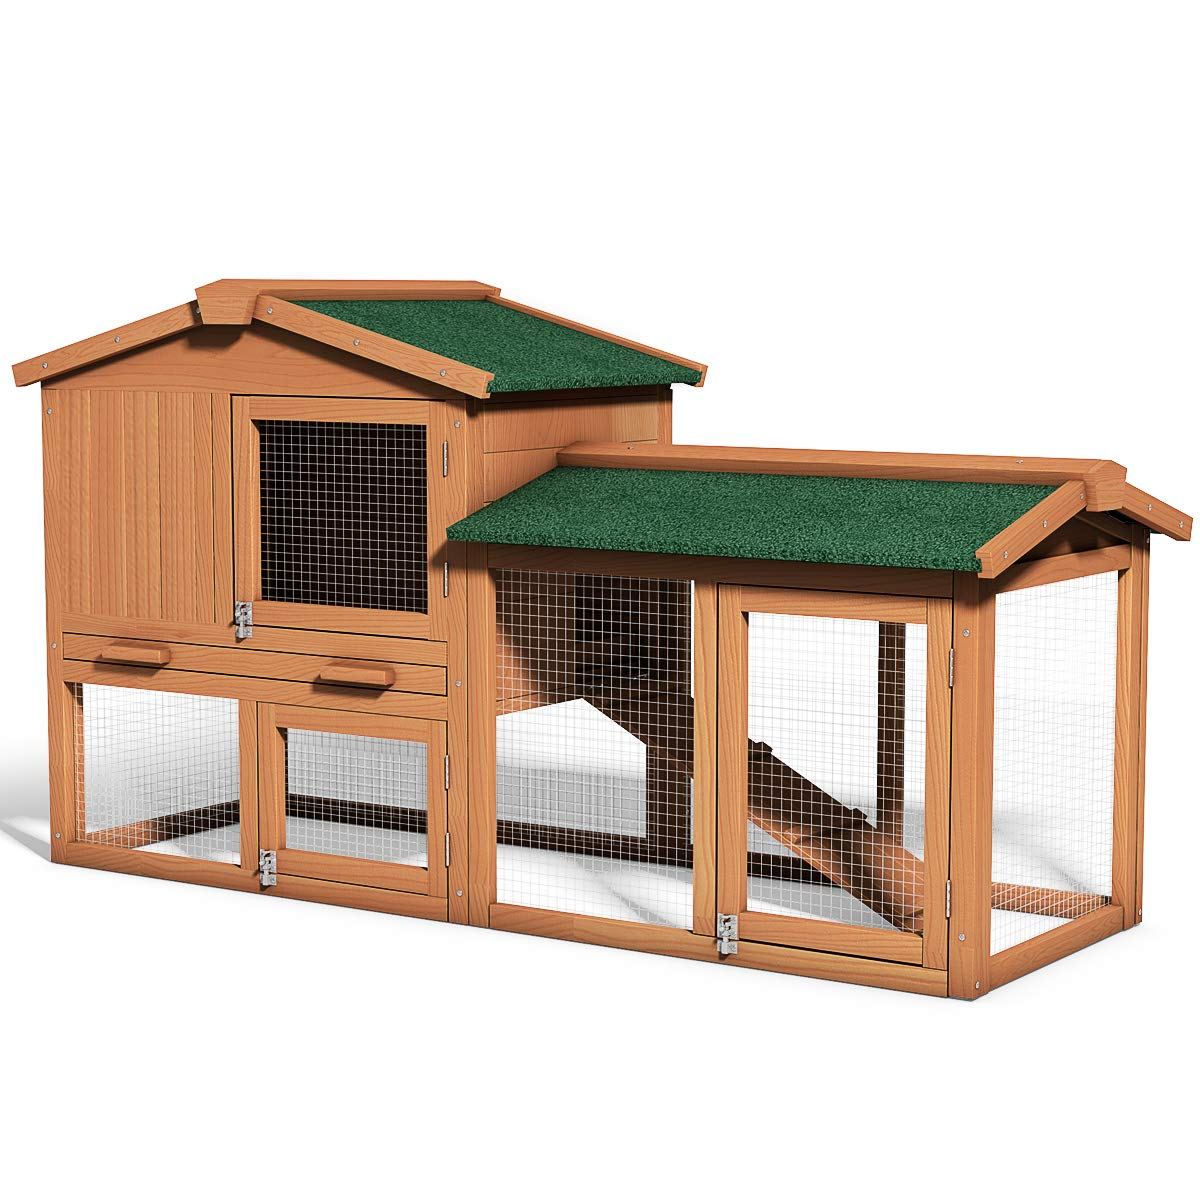 Tangkula Large Chicken Coop, 58'' Wooden Hen House Outdoor Backyard Garden Bunny Rabbit Hutch with Ventilation Door, Removable Tray & Ramp Chicken Coop (58 inches) by Tangkula